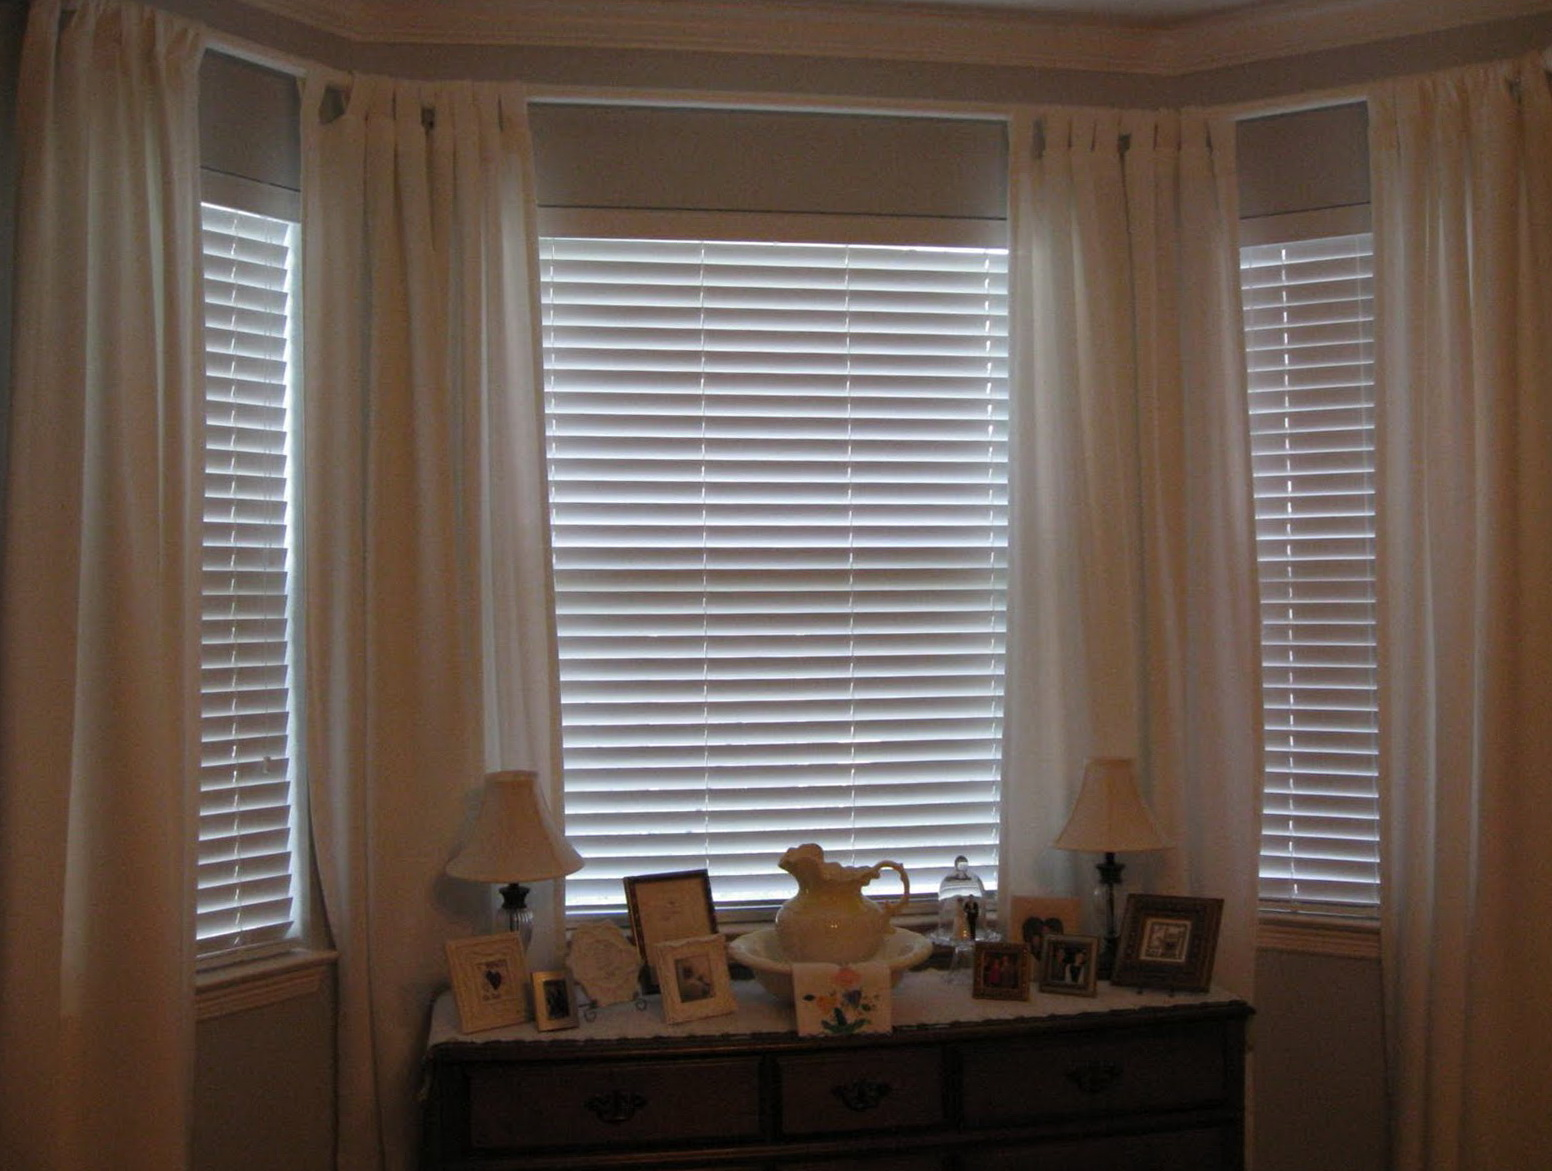 Blinds Or Curtains For Bay Window